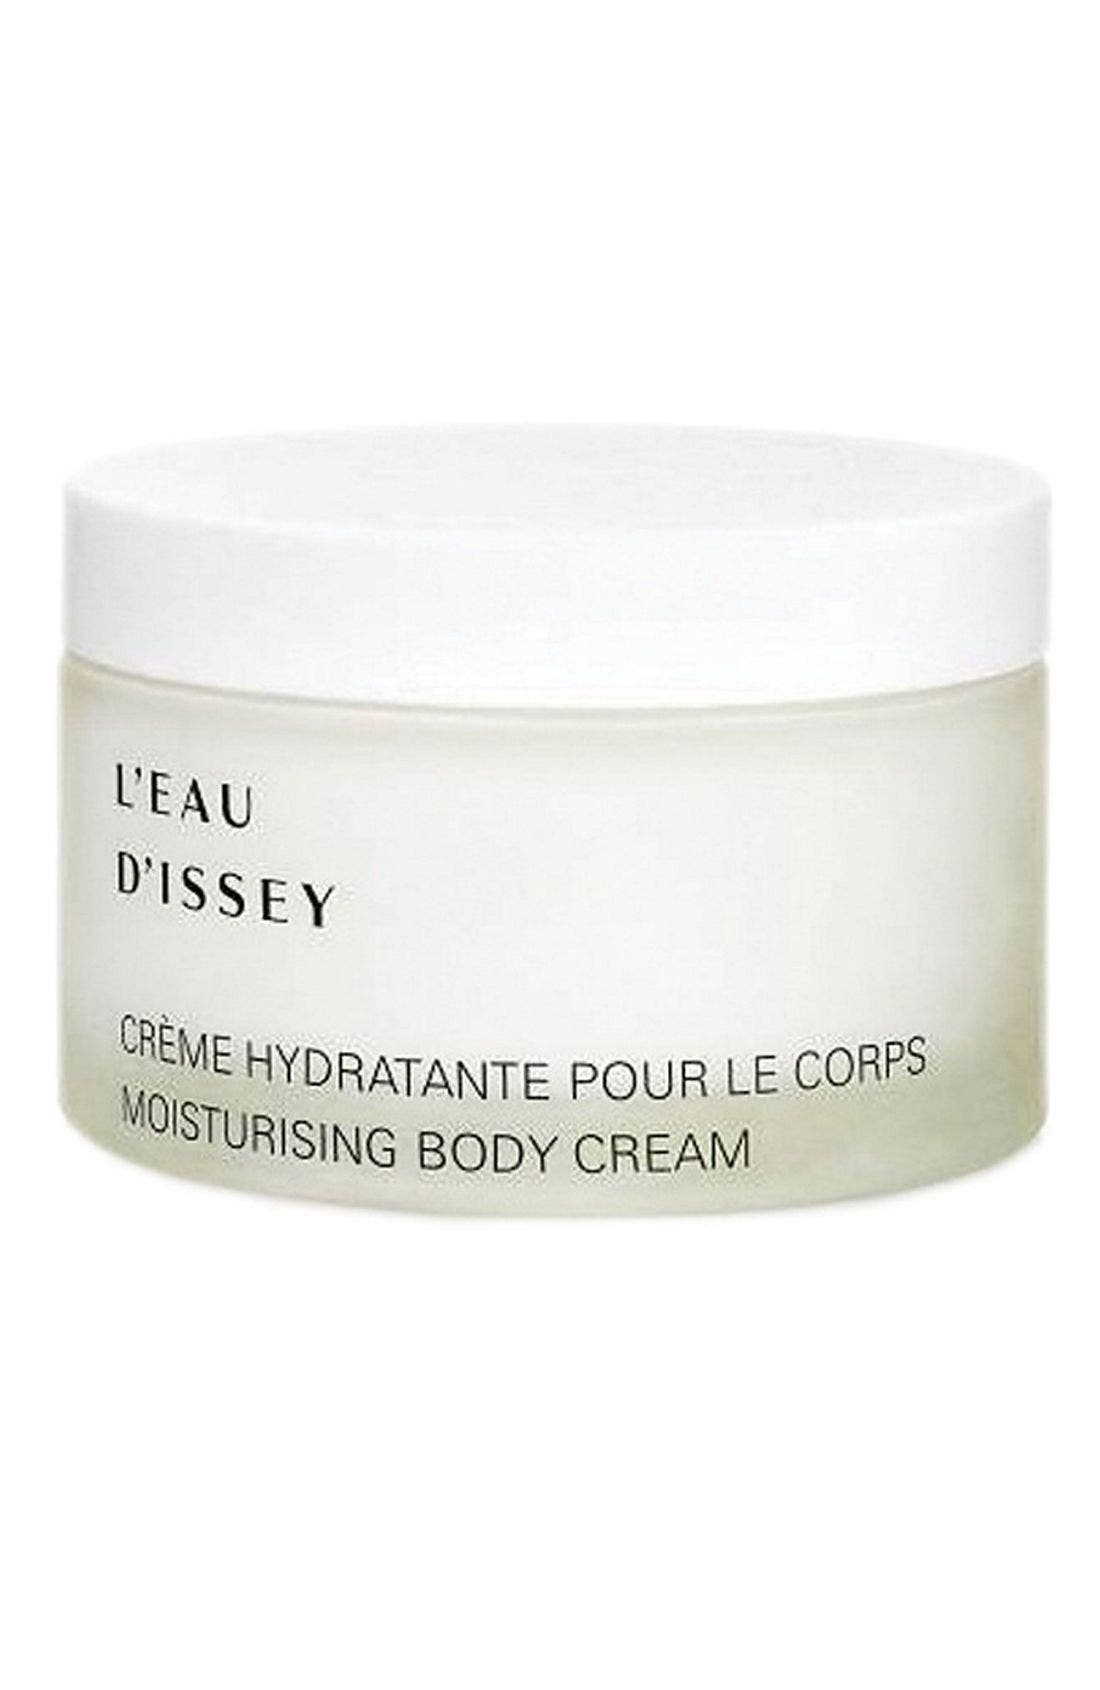 ISSEY MIYAKE, 'L'Eau d'Issey' Moisturizing Body Cream, Main thumbnail 1, color, NO COLOR